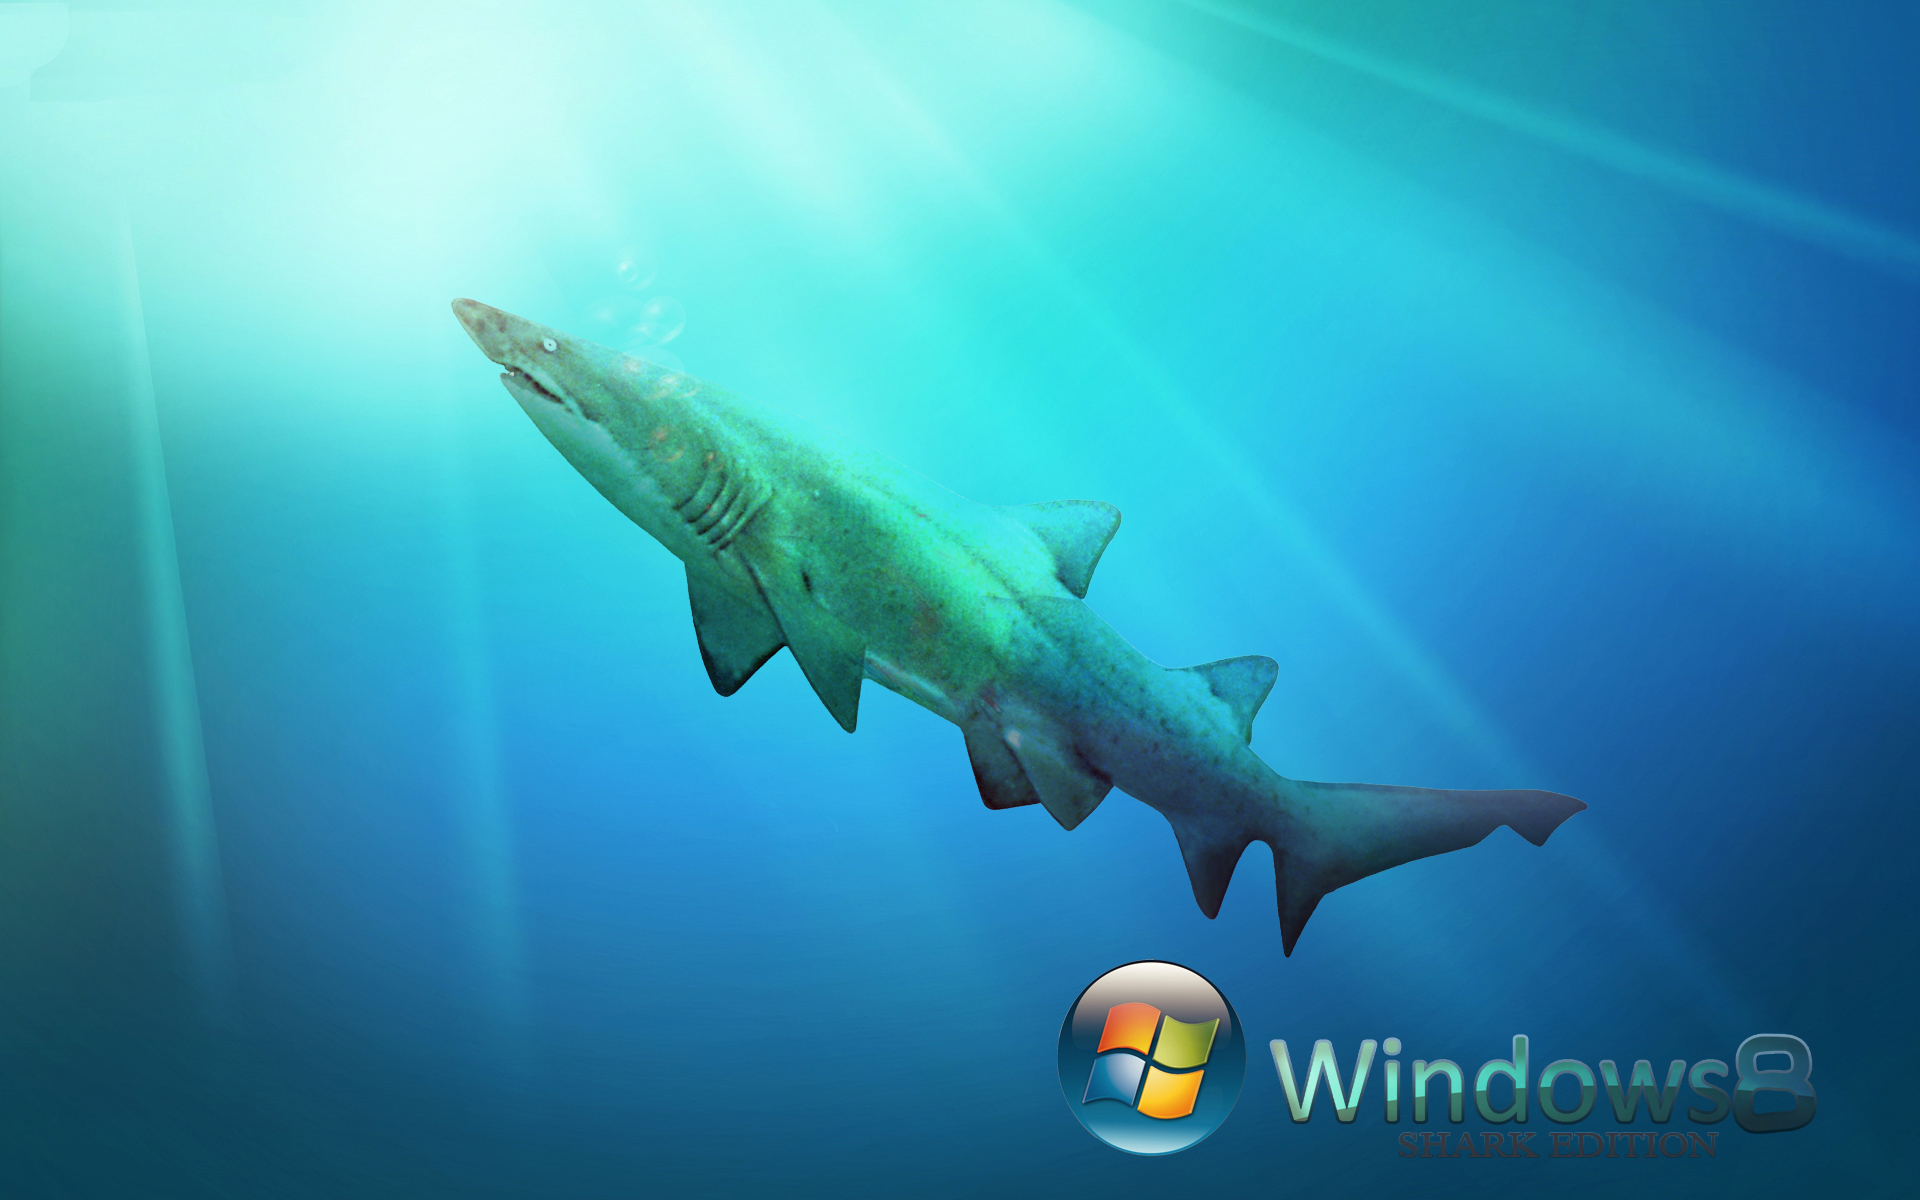 Live Wallpapers For Windows 8 30 Wallpapers – Adorable Wallpapers